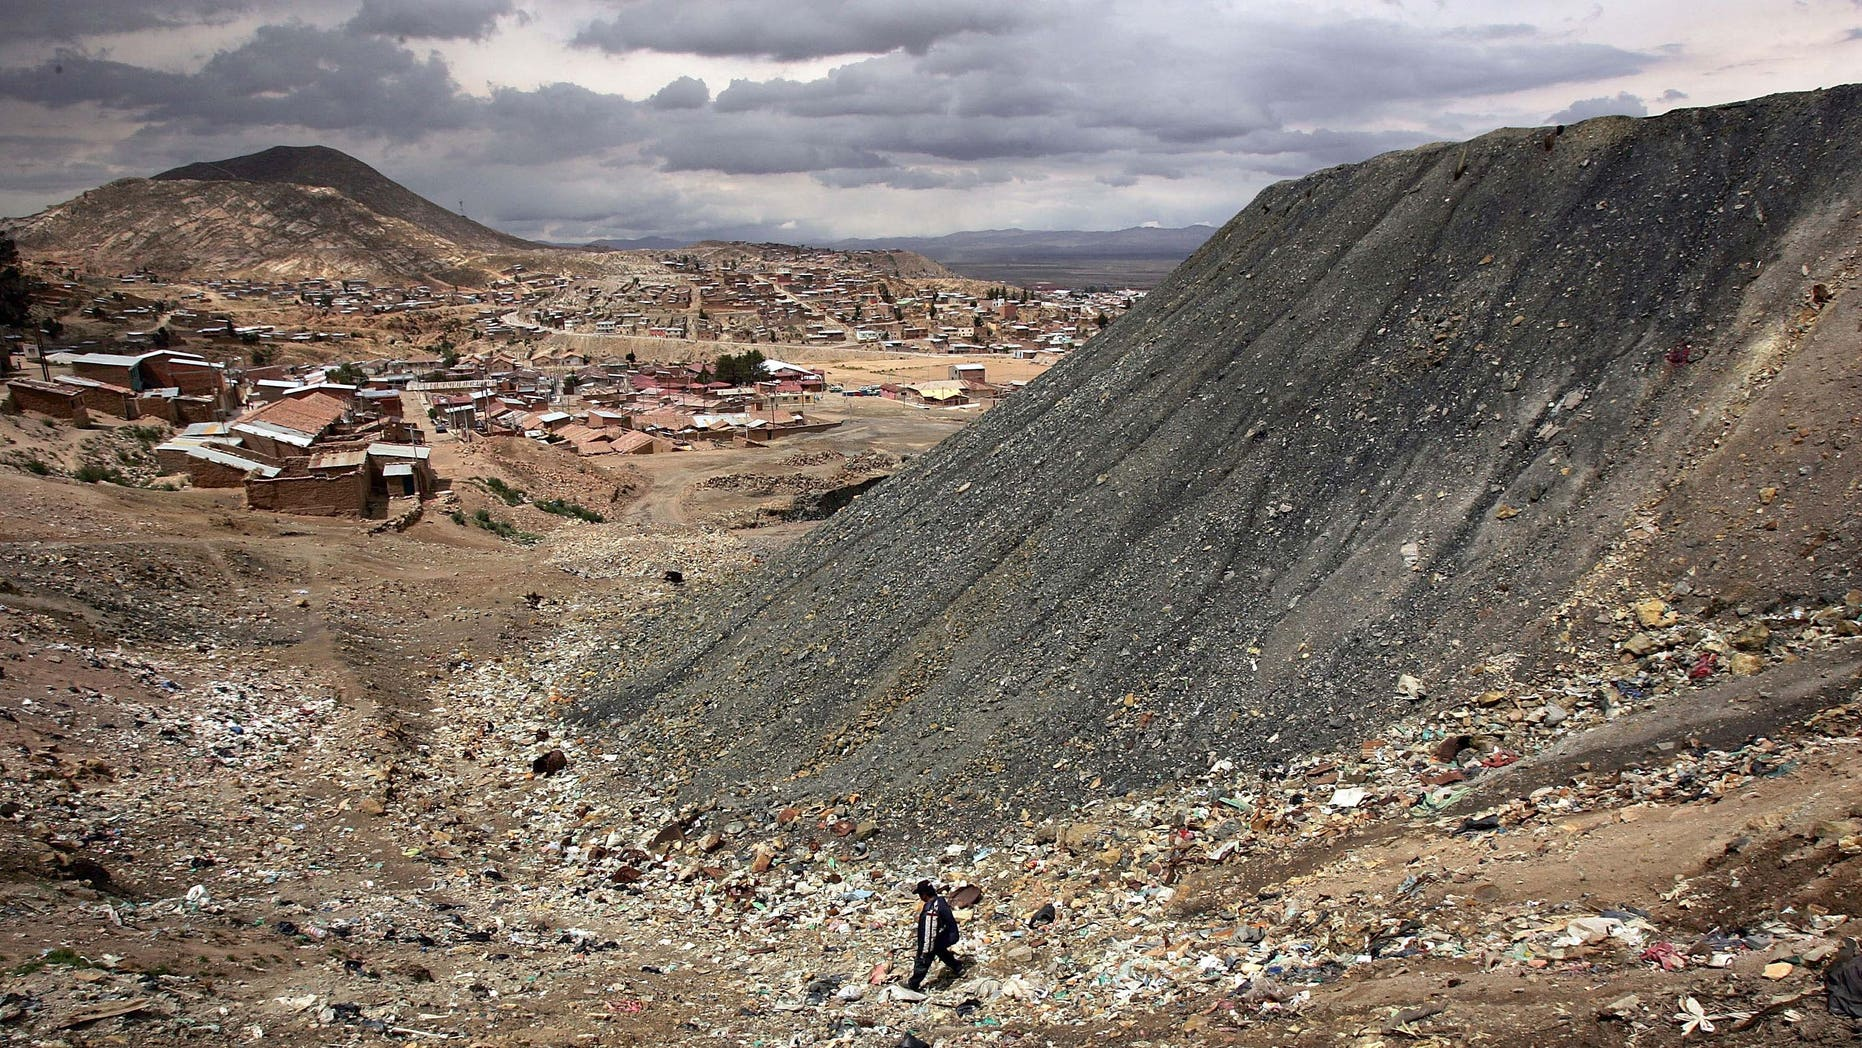 ORURO, BOLIVIA - DECEMBER 14:  A miner walks past a mountain of deposits from the San Jose Mine December 14, 2005 in Oruro, Bolivia. Miners, a crucial sector of Bolivian society, have been a commanding force in the upcoming presidential elections in Bolivia, with most steadfastly behind candidate Evo Morales. Morales, a one time coca farmer and union leader, who offers what may become the most radical vision in Latin America, is leading in the polls for the presidential election which is scheduled to take place on December 18. Washington is paying close attention to the race as fears grow of yet another leftist government.  (Photo by Spencer Platt/Getty Images)